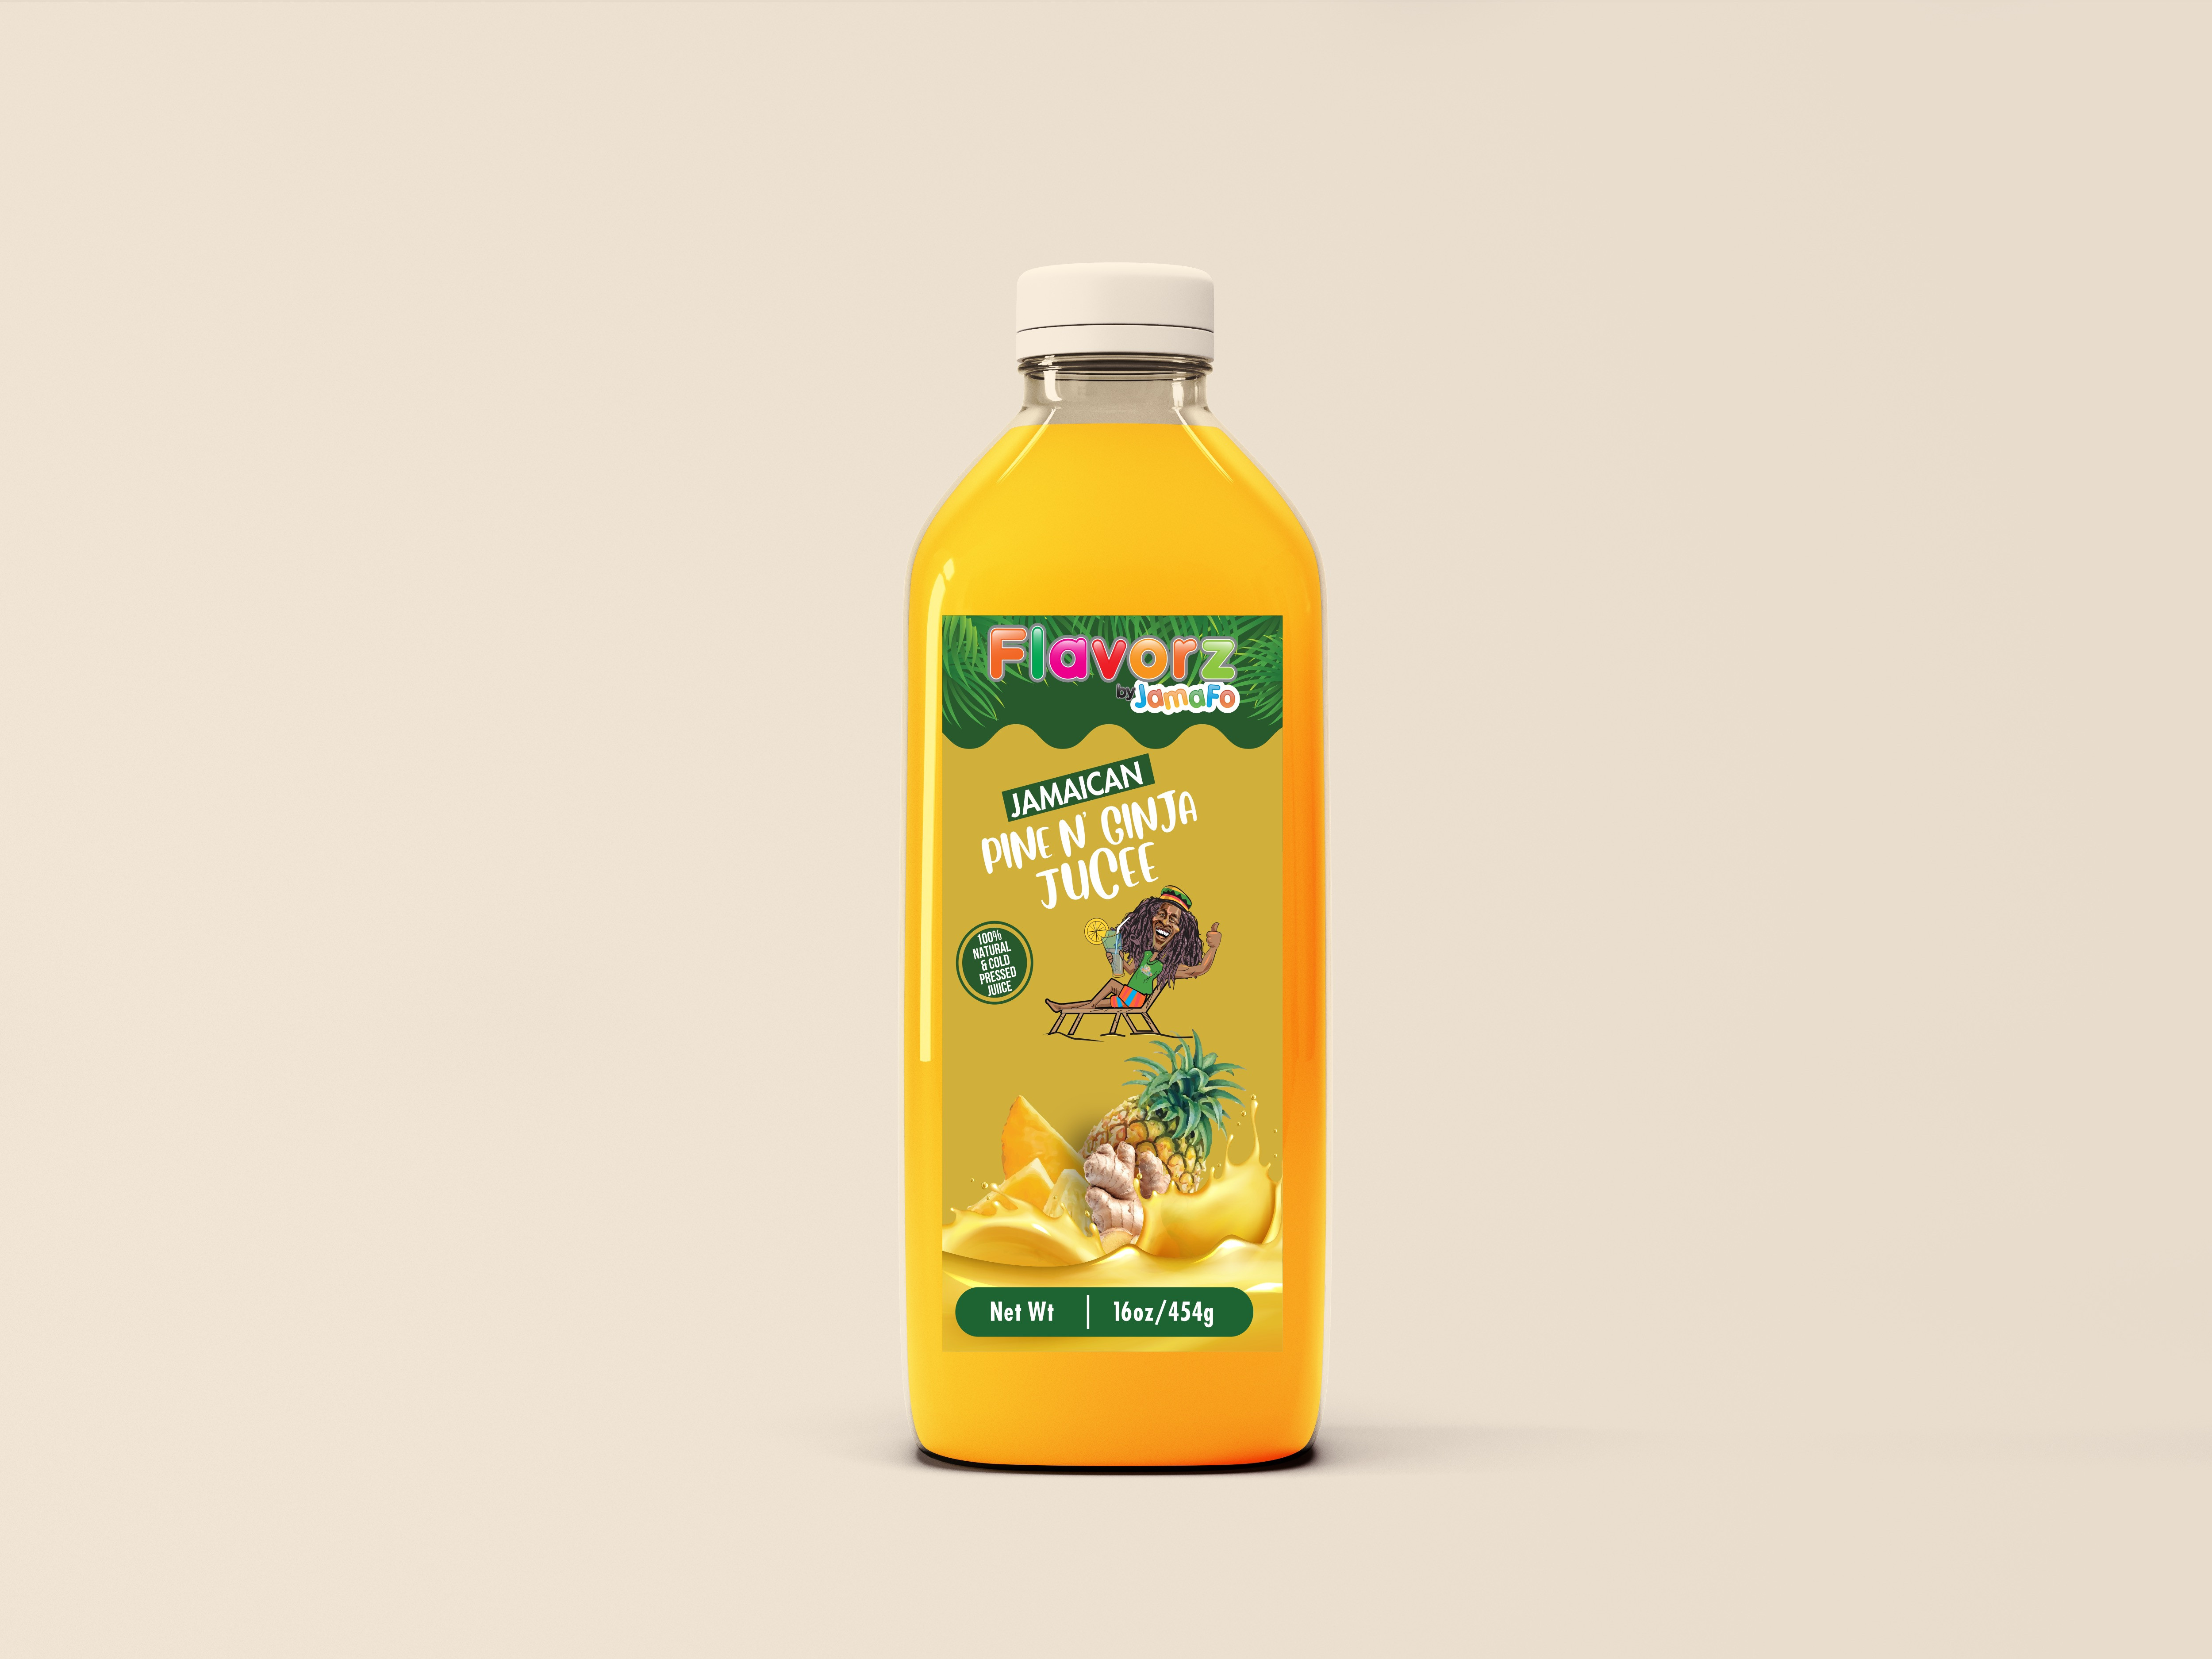 100% Natural Juices